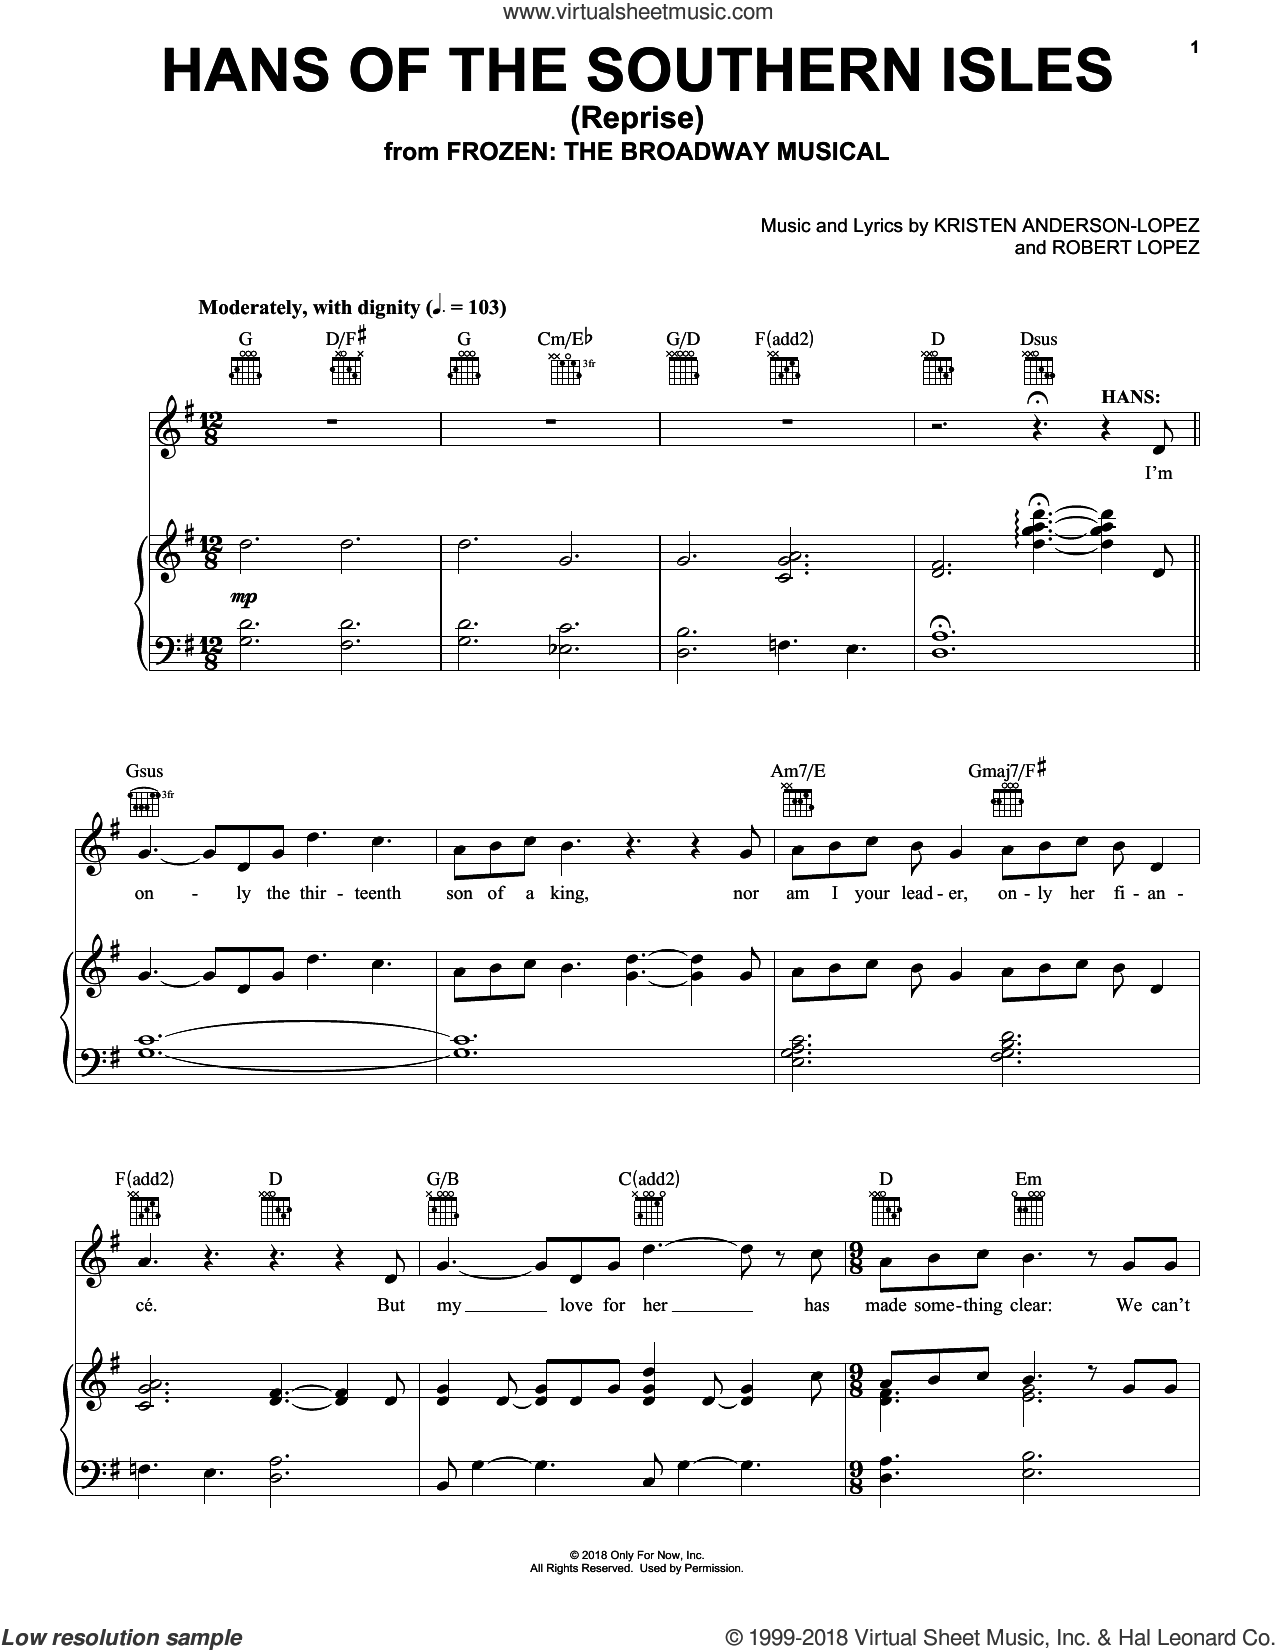 Hans Of The Southern Isles (Reprise) (from Frozen: The Broadway Musical) sheet music for voice, piano or guitar by Robert Lopez, Kristen Anderson-Lopez and Kristen Anderson-Lopez & Robert Lopez, intermediate skill level